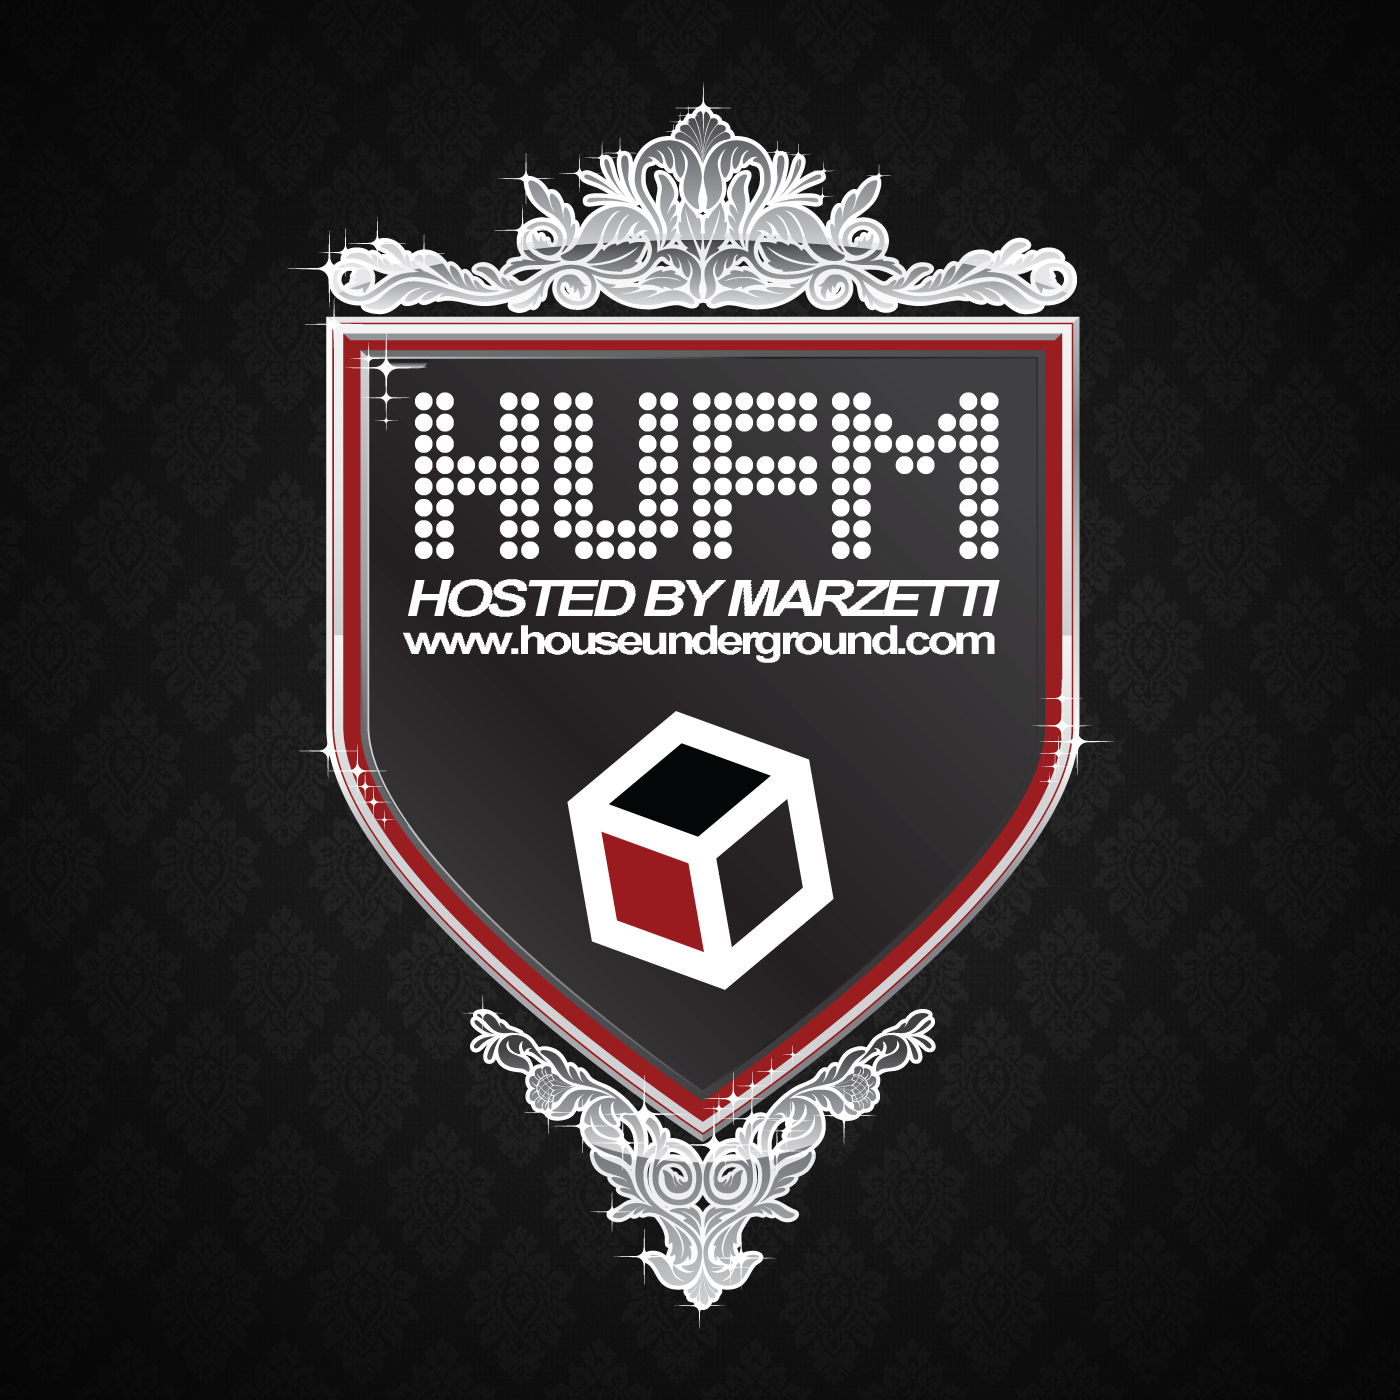 The HUFM Podcast, Hosted by Marzetti show art